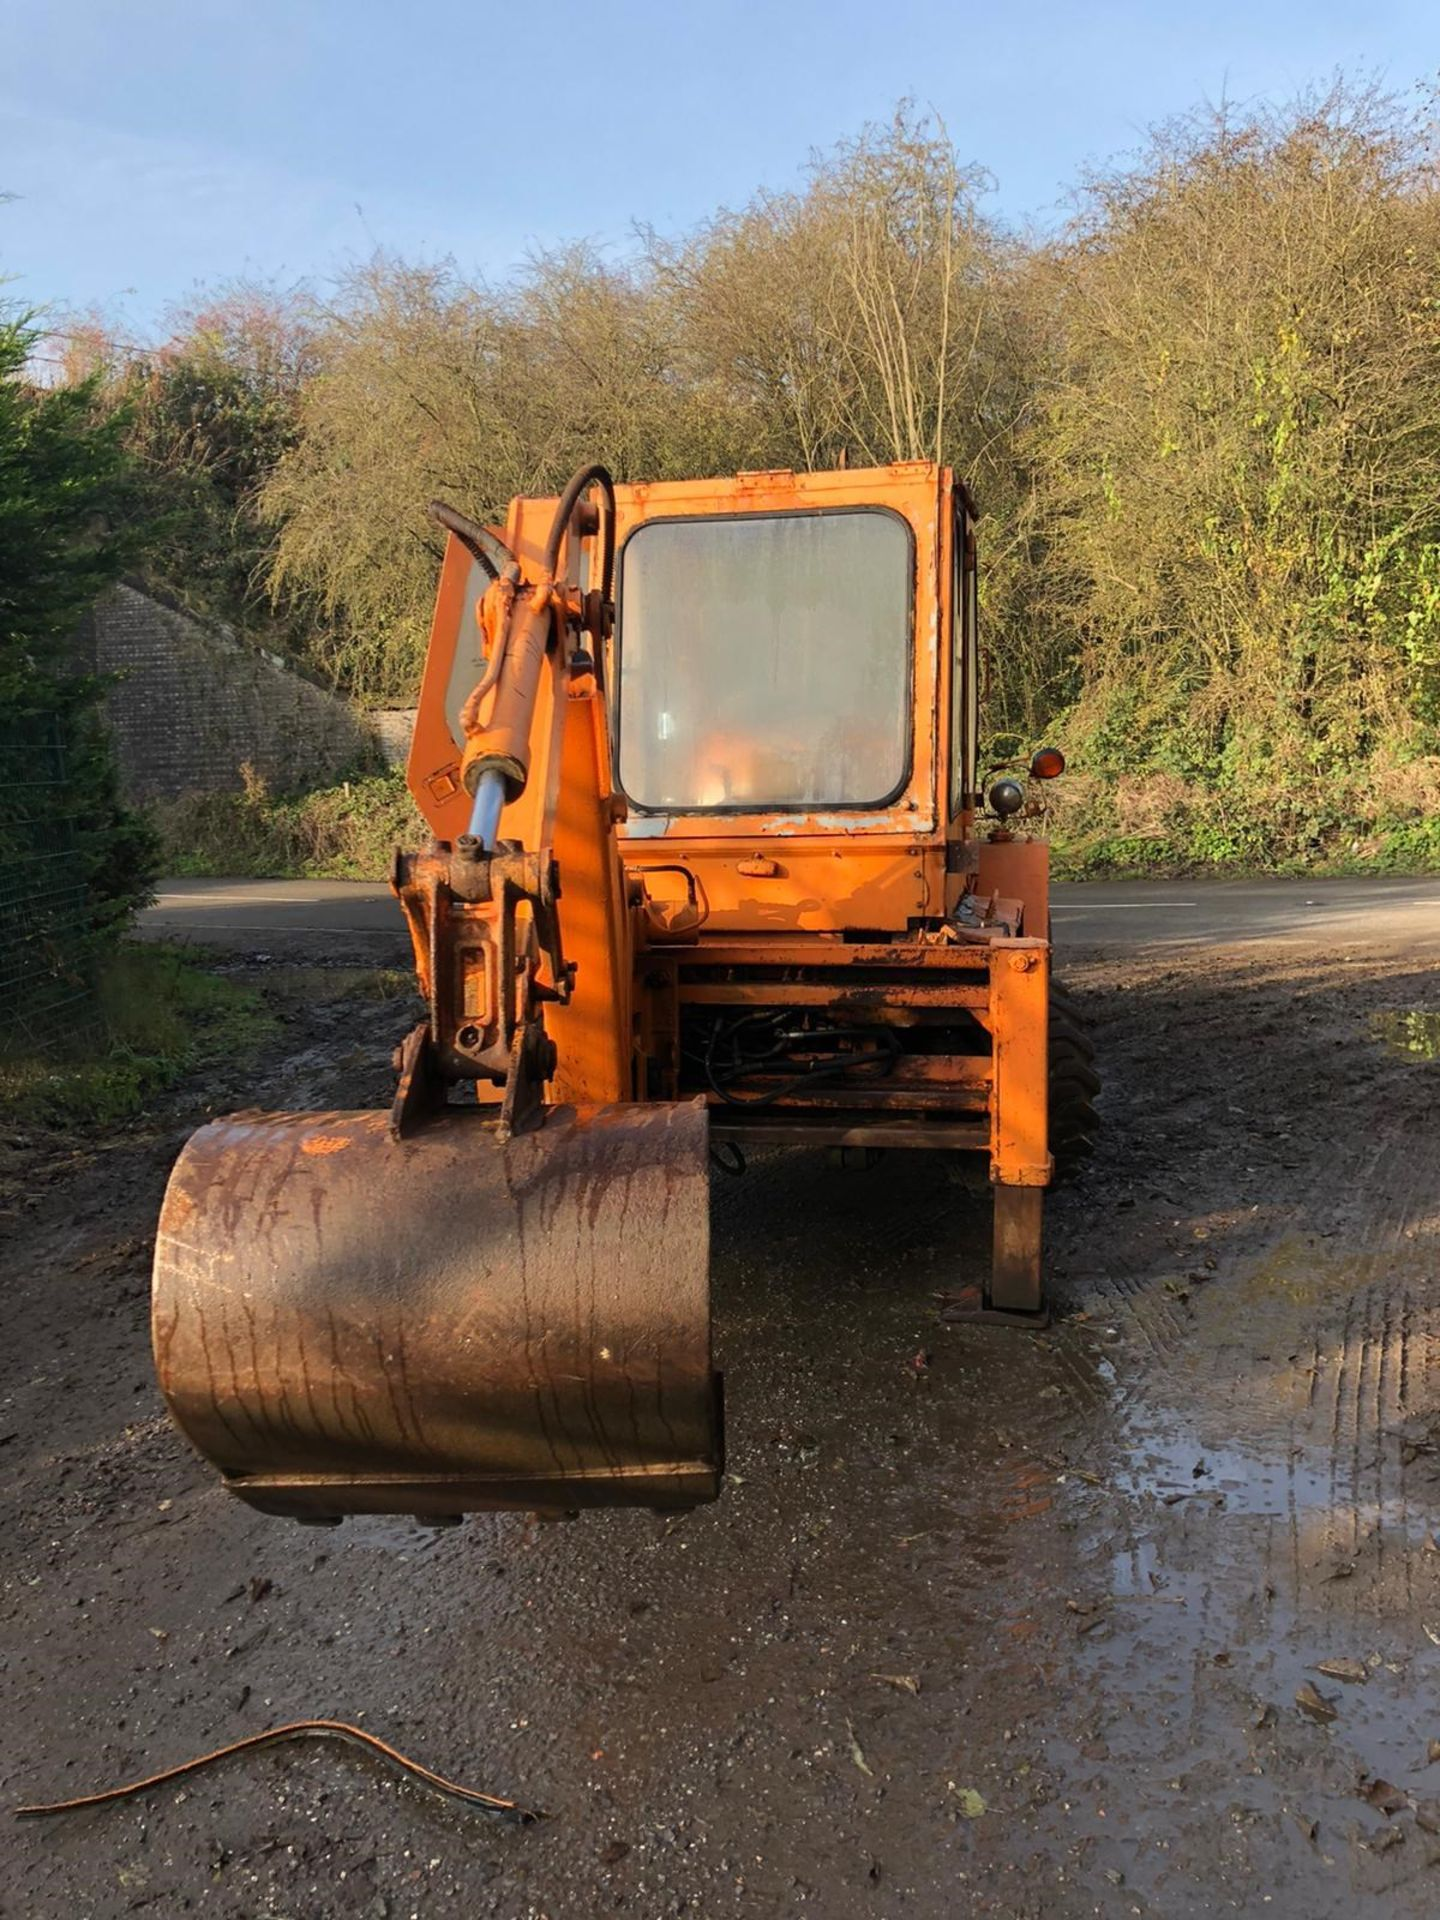 Lot 151 - KUBOTA RW25 4X4 BACKHOE DIGGER C/W 1 X REAR BUCKET *PLUS VAT*